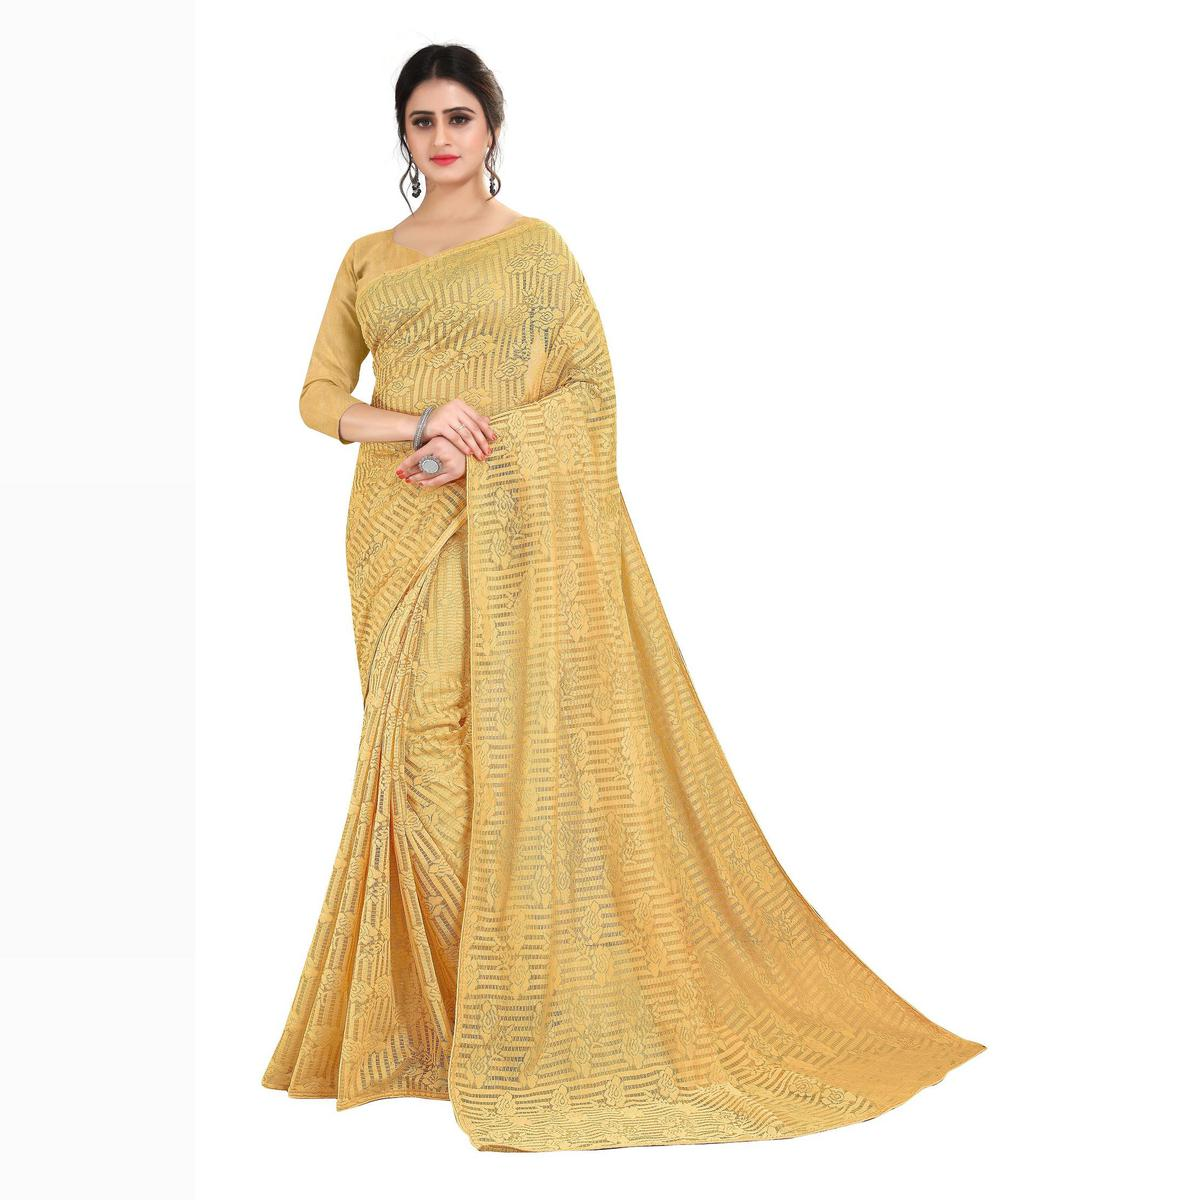 SLE - Beige Soft Net Jacquard Solid Saree With Blouse